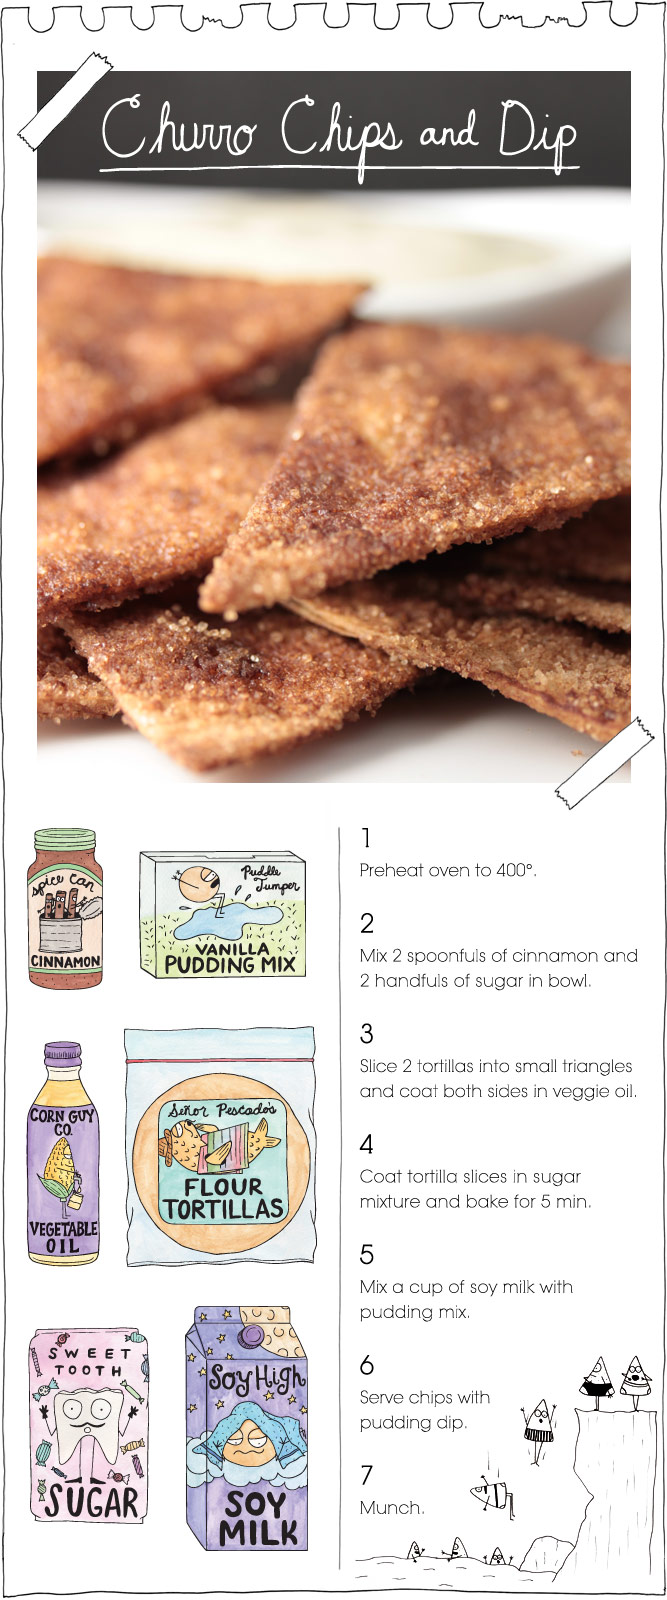 The Vegan Stoner's Churro Chips